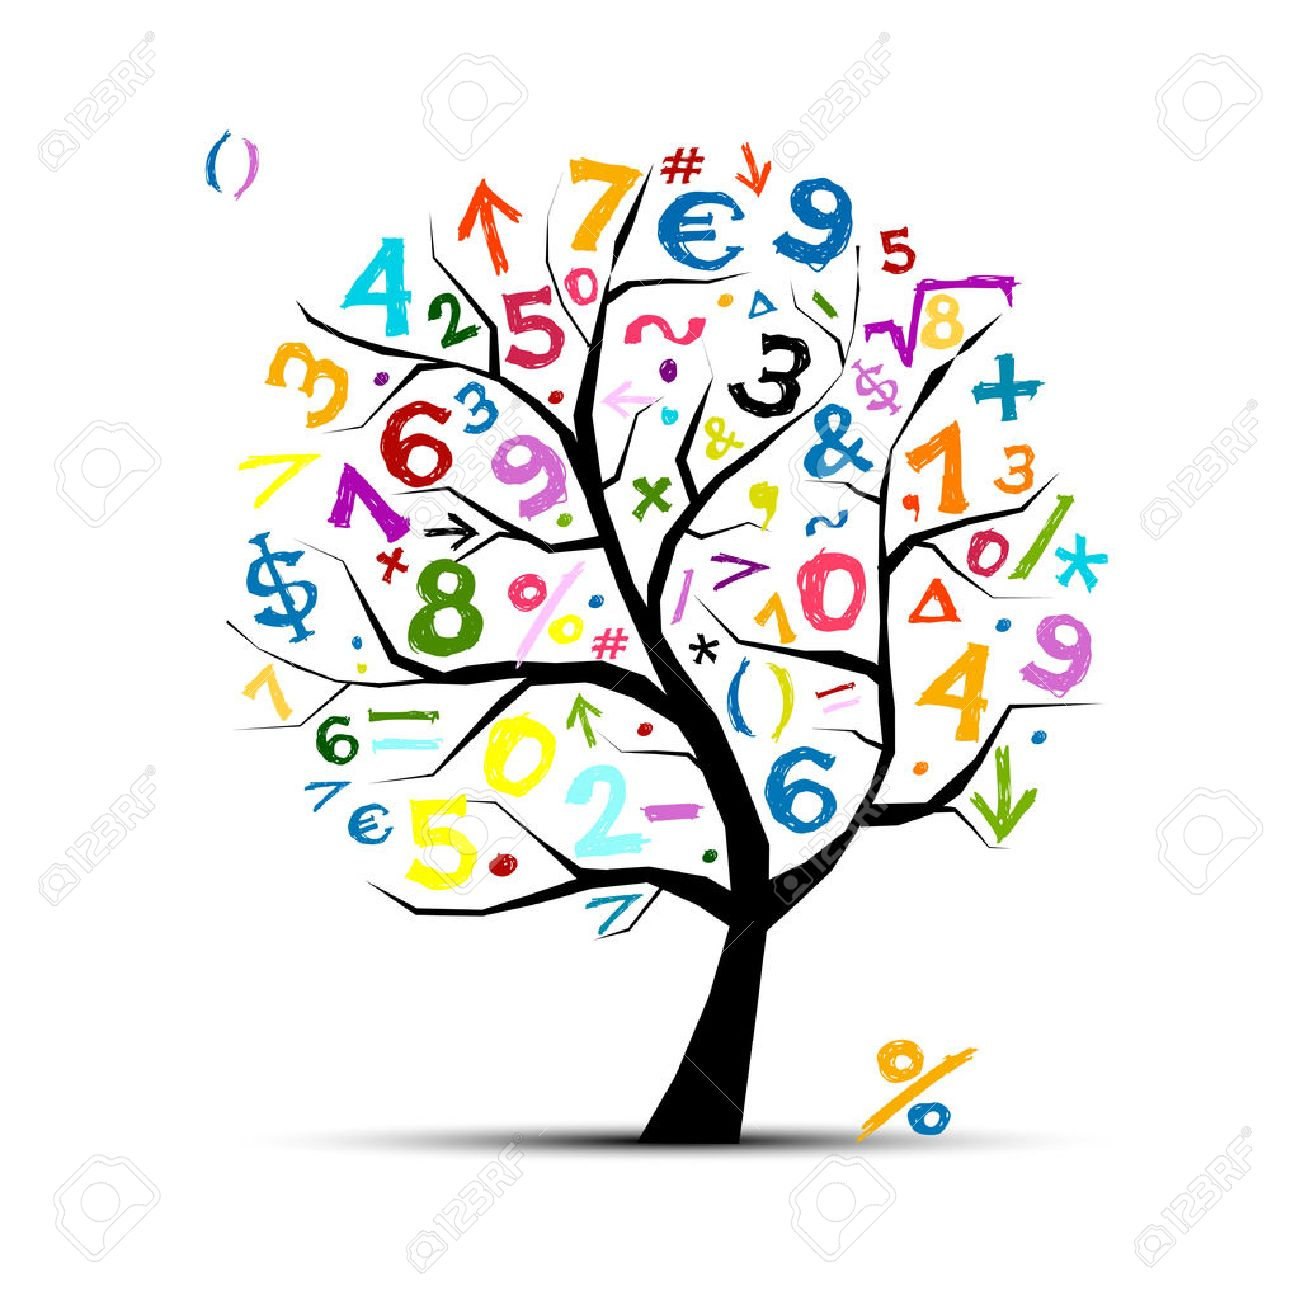 Art tree with math symbols for your design - 64888296